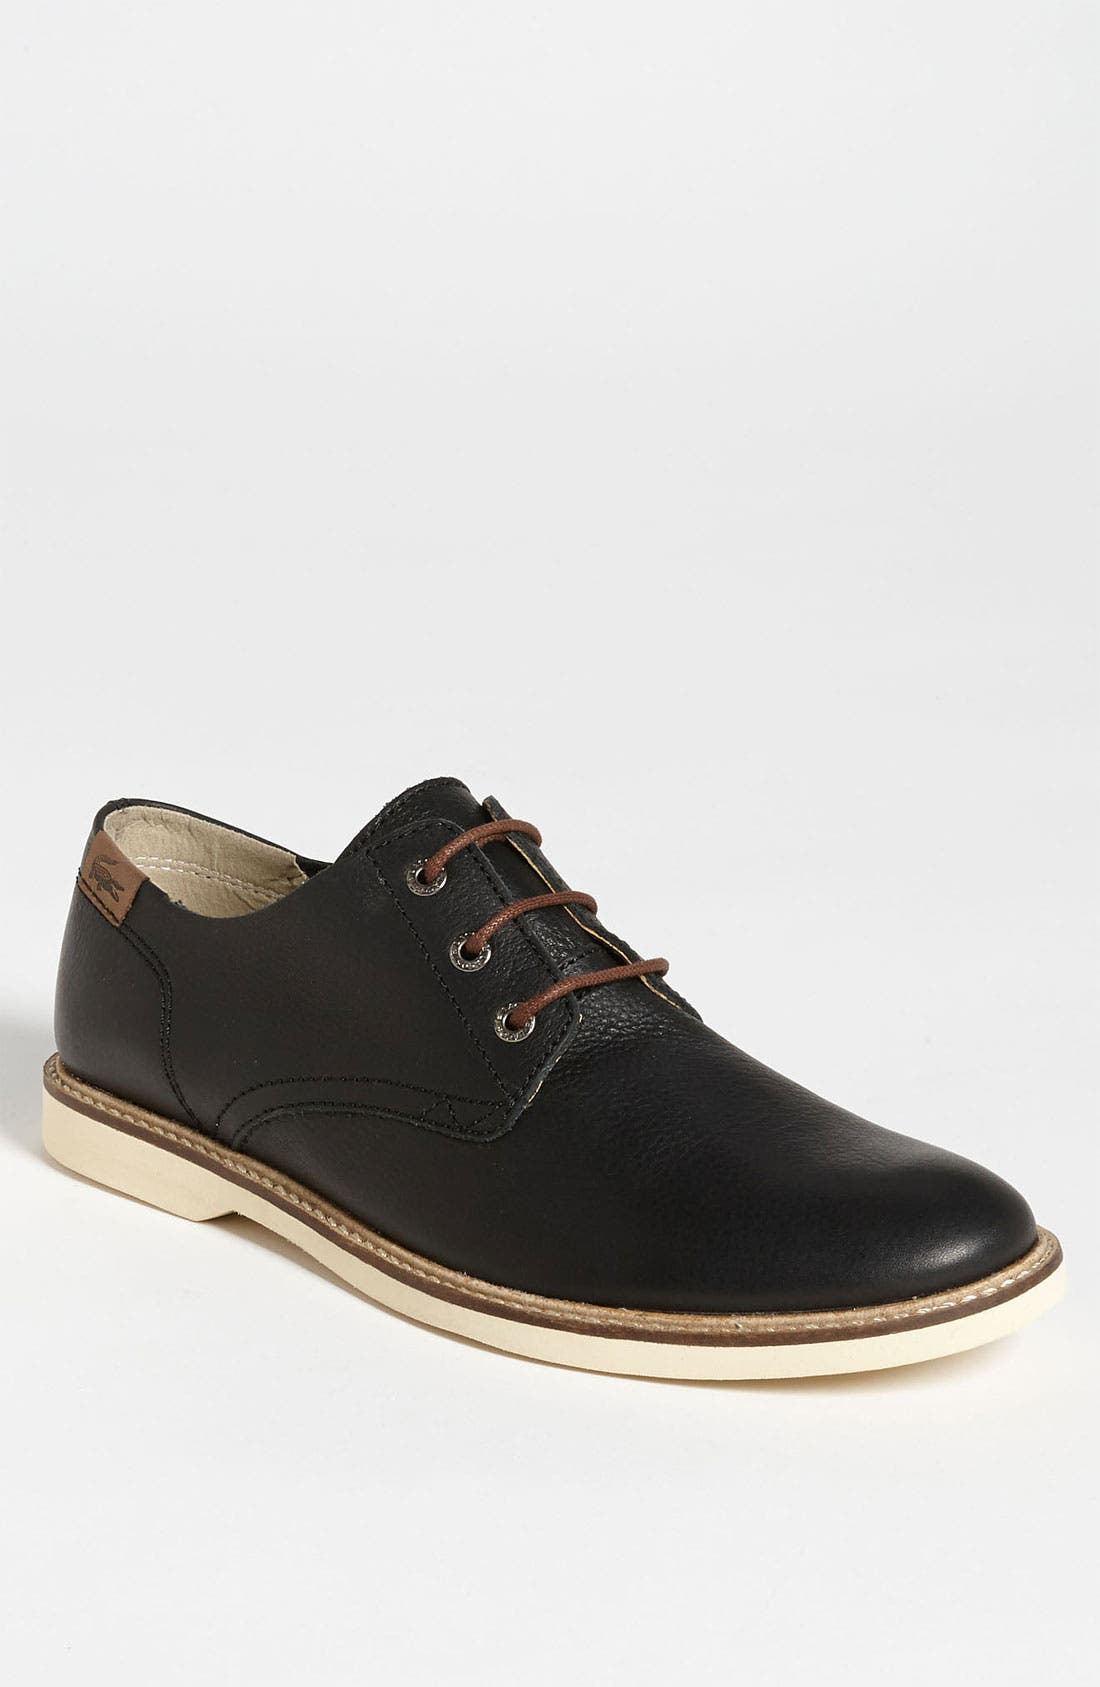 Main Image - Lacoste 'Sherbrooke 6' Oxford